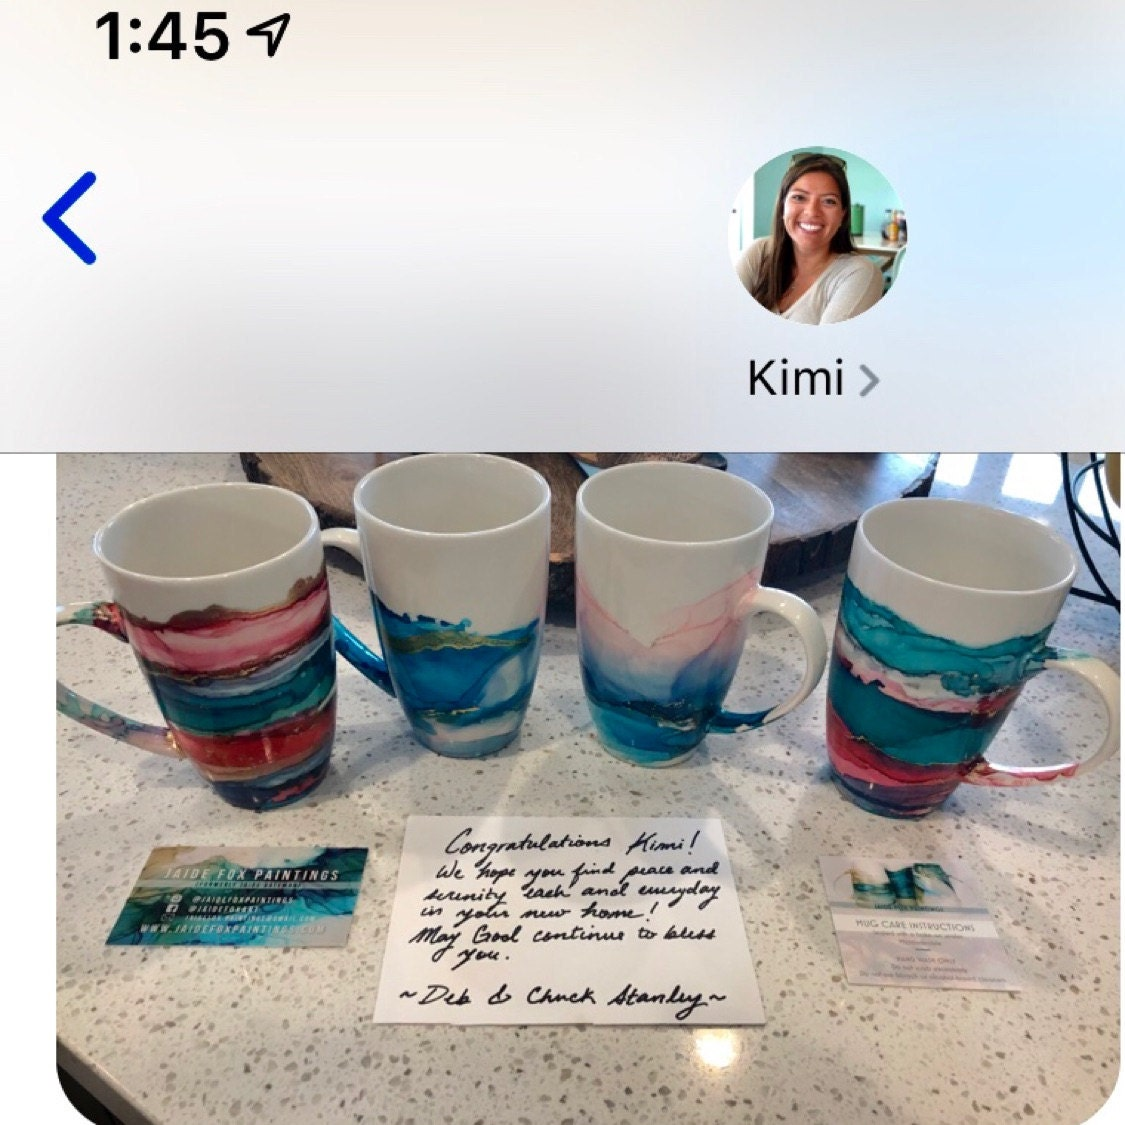 Deborah Stanley added a photo of their purchase